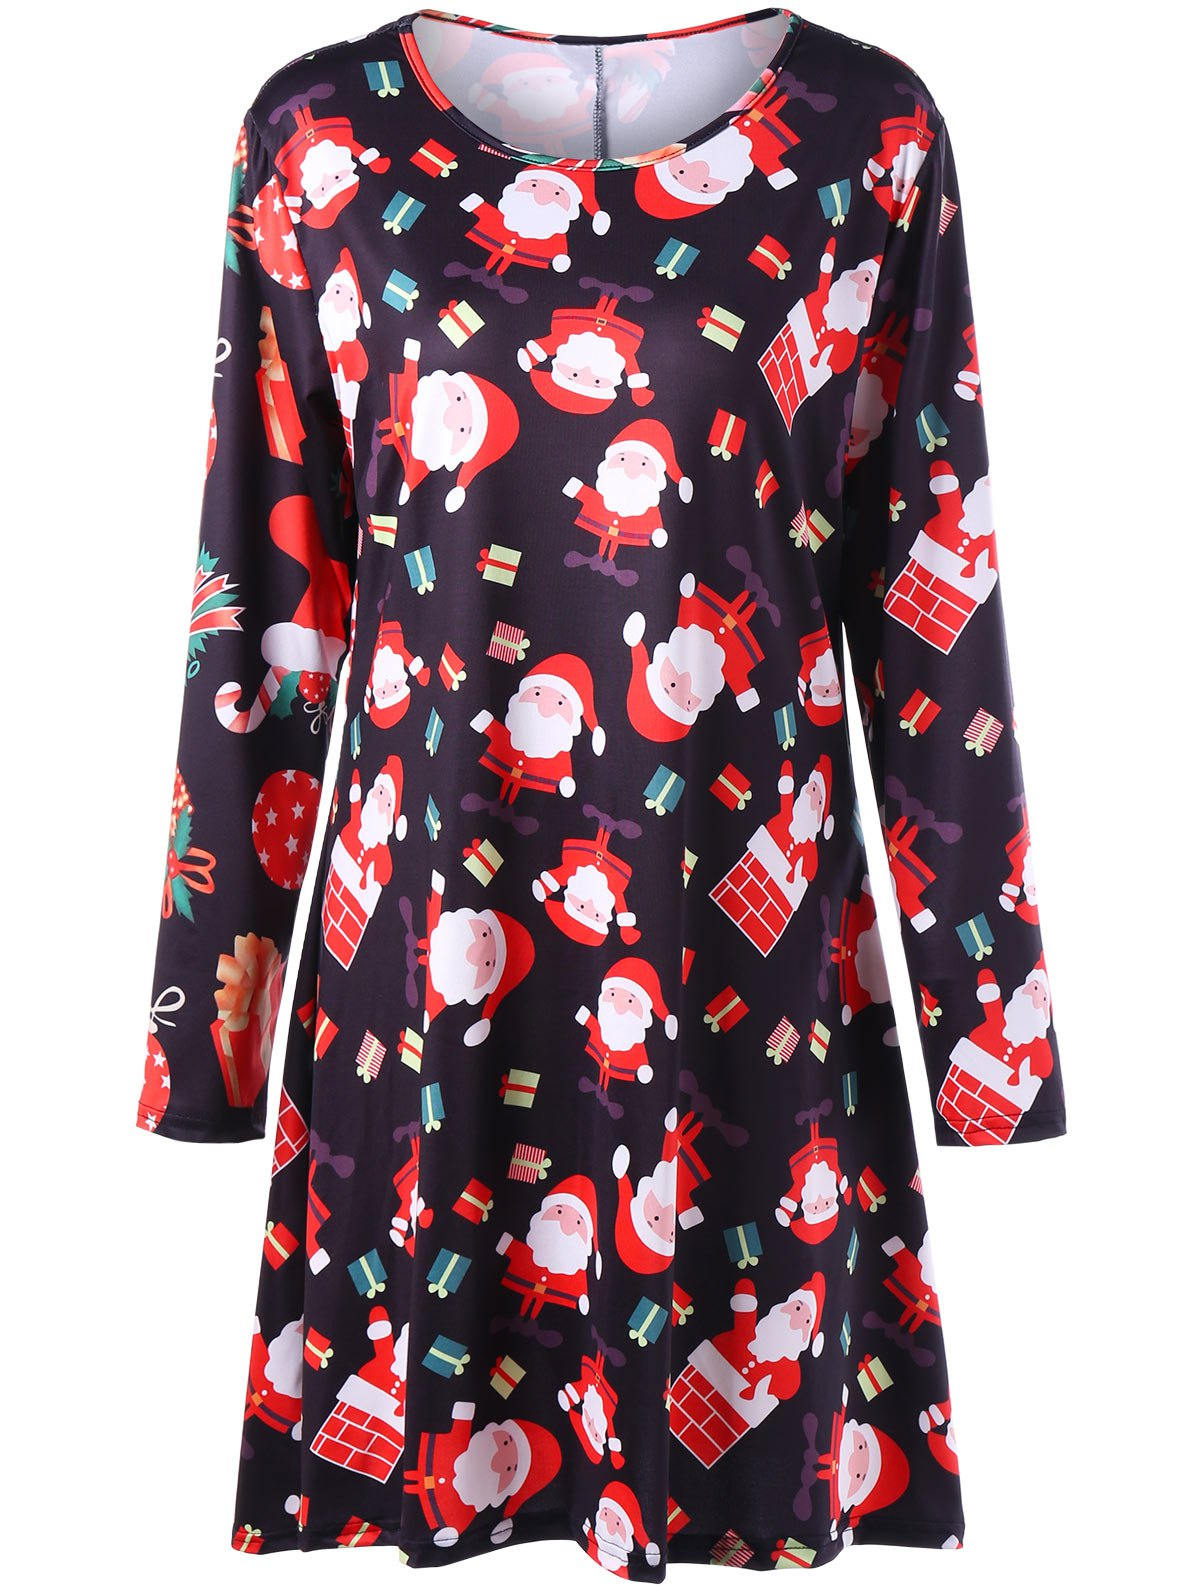 Christmas Santa Claus Print Plus Size Mini Swing DressWOMEN<br><br>Size: 3XL; Color: BLACK; Style: Brief; Material: Polyester,Spandex; Silhouette: A-Line; Dresses Length: Mini; Neckline: Round Collar; Sleeve Length: Long Sleeves; Pattern Type: Print; With Belt: No; Season: Fall,Spring; Weight: 0.4000kg; Package Contents: 1 x Dress;